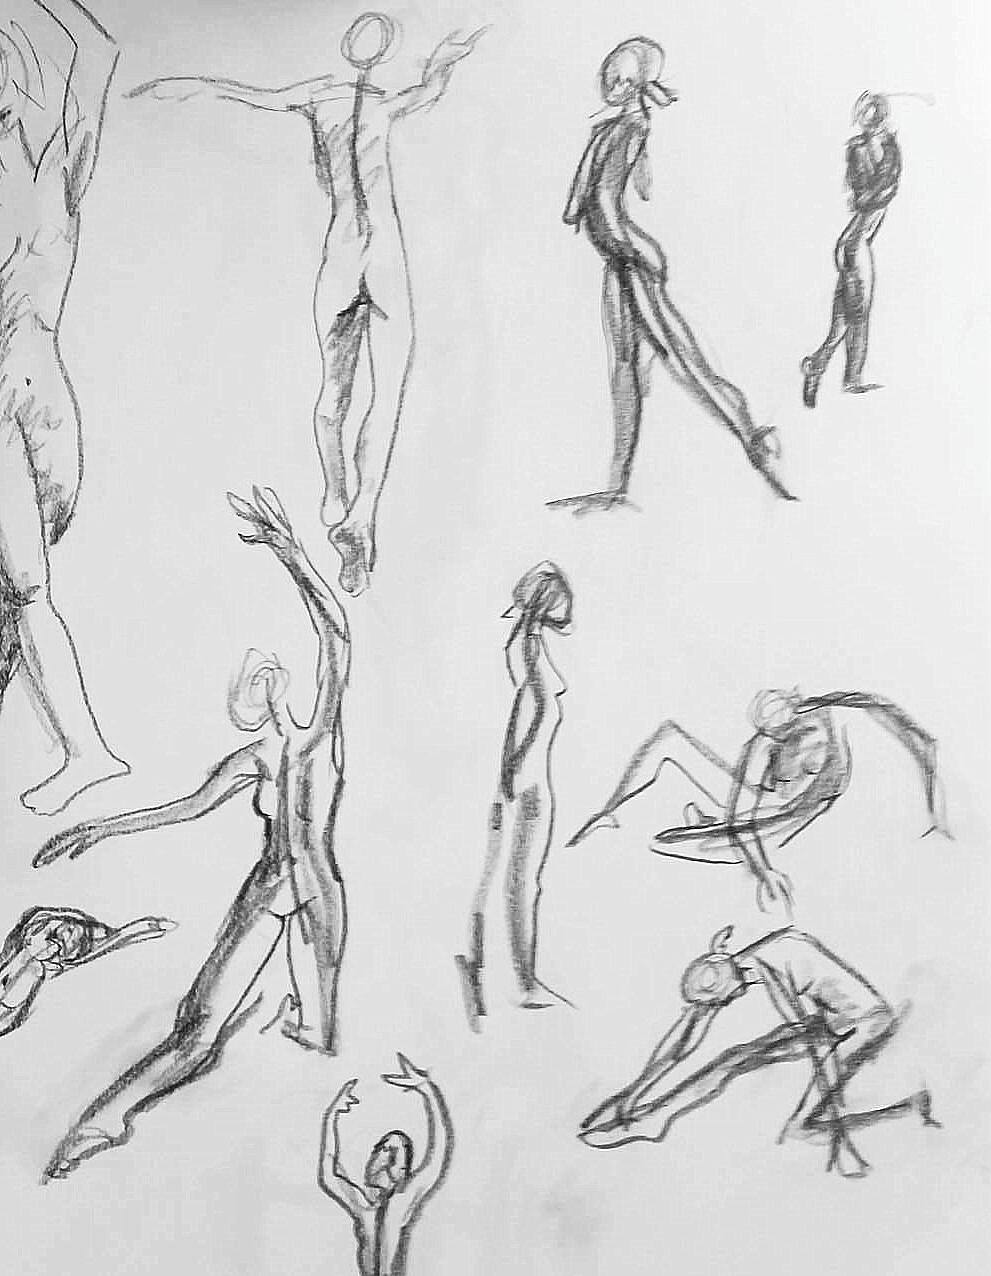 30 second poses